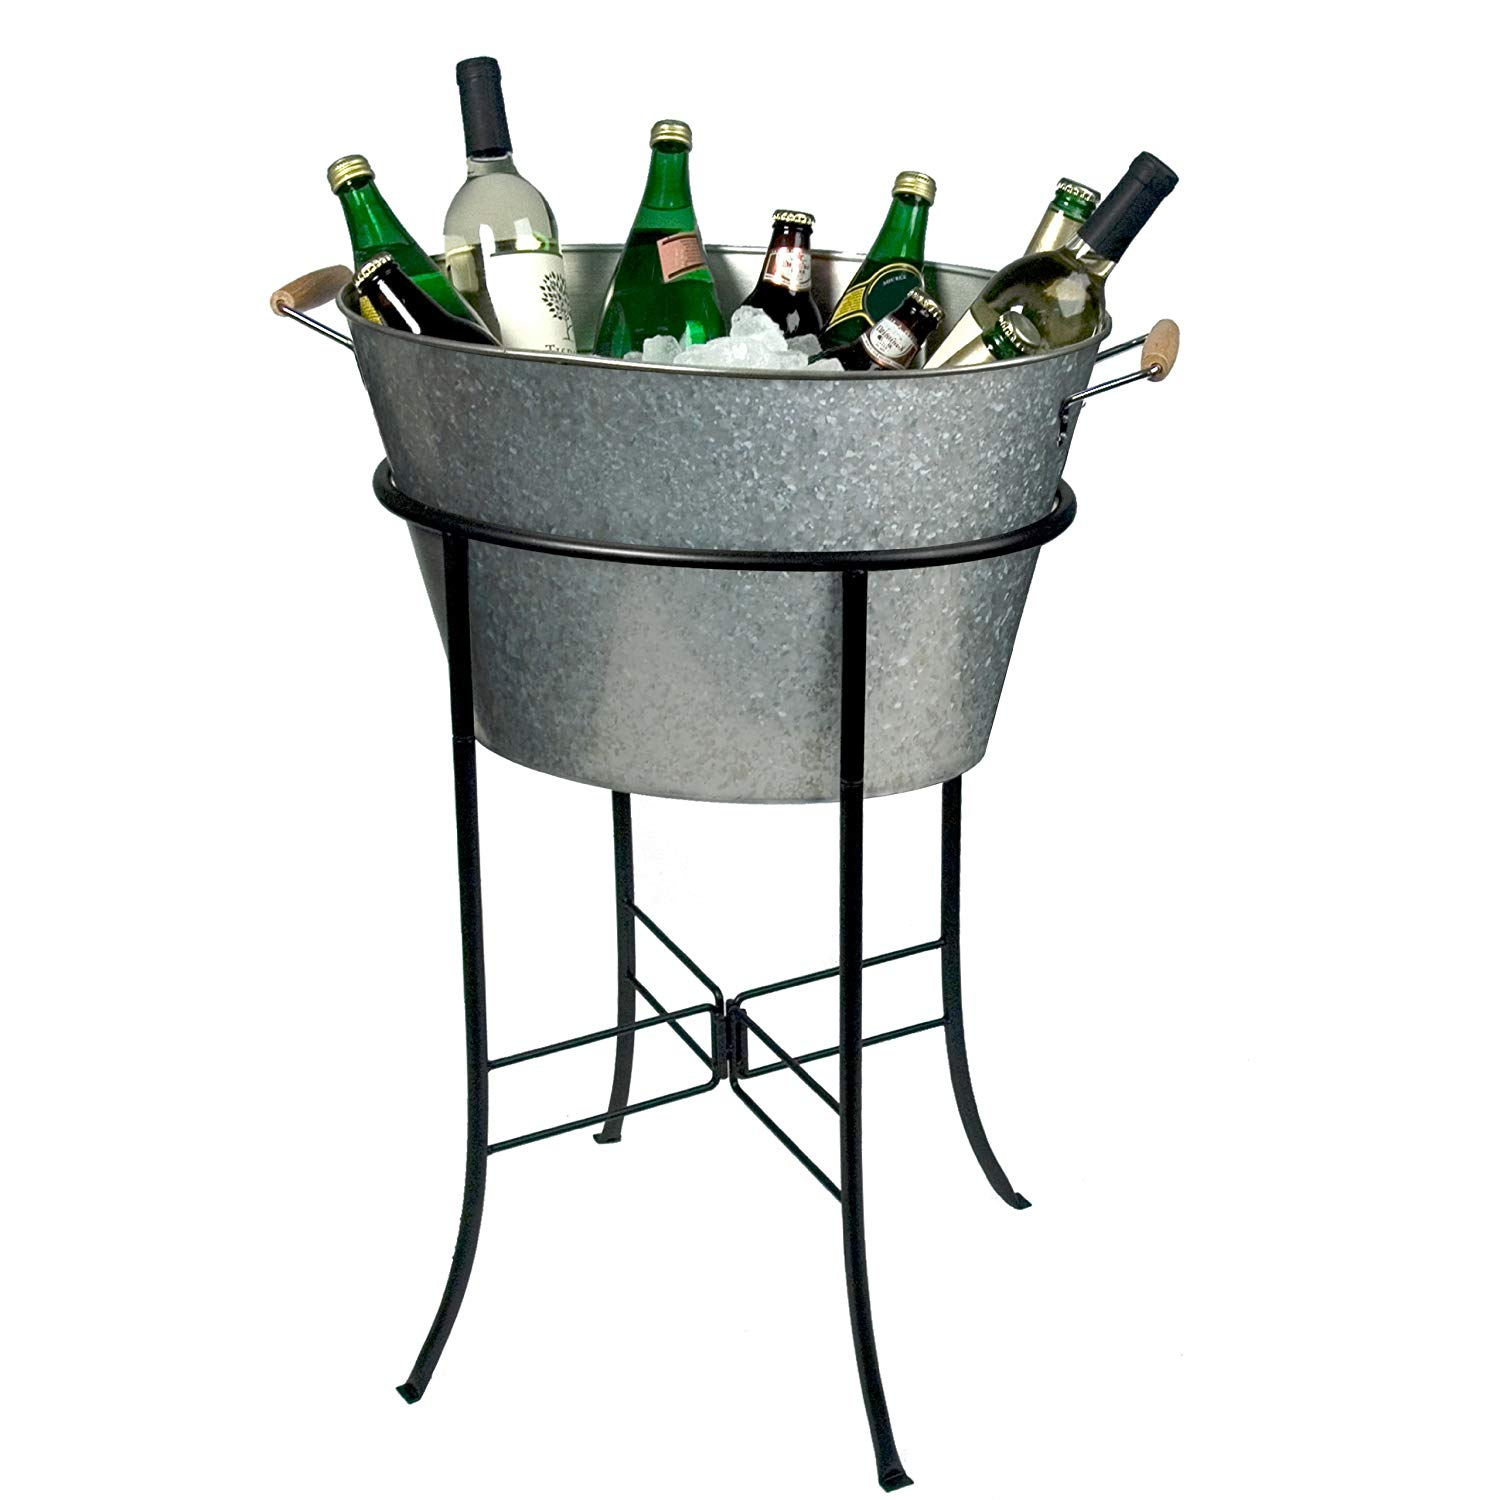 Galvanized Metal Party Tub with Stand